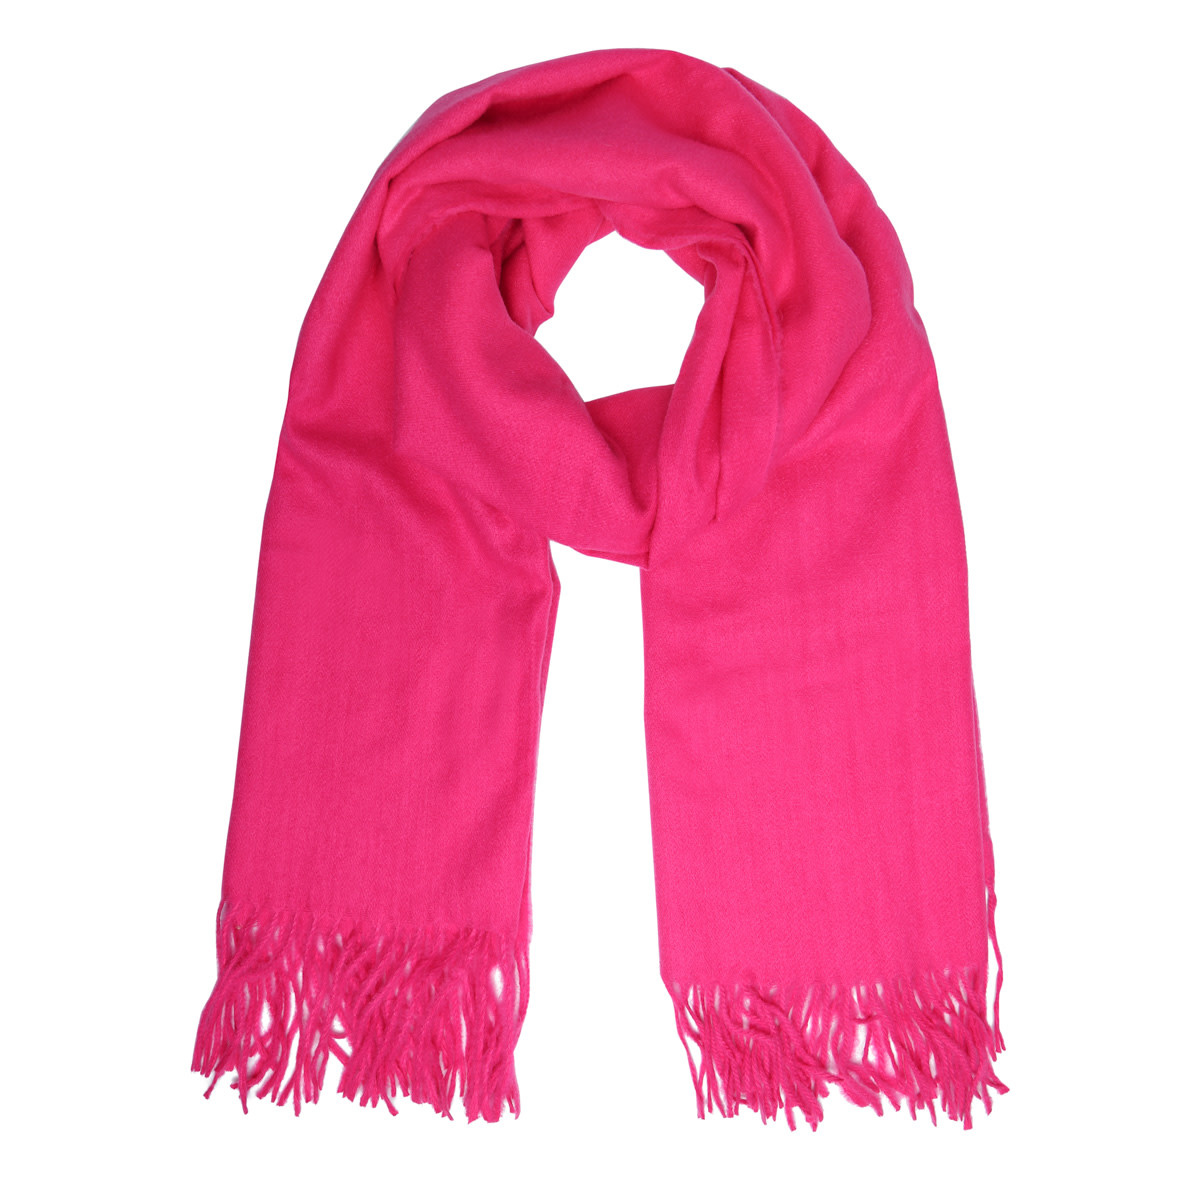 With love Scarf chilled fushia